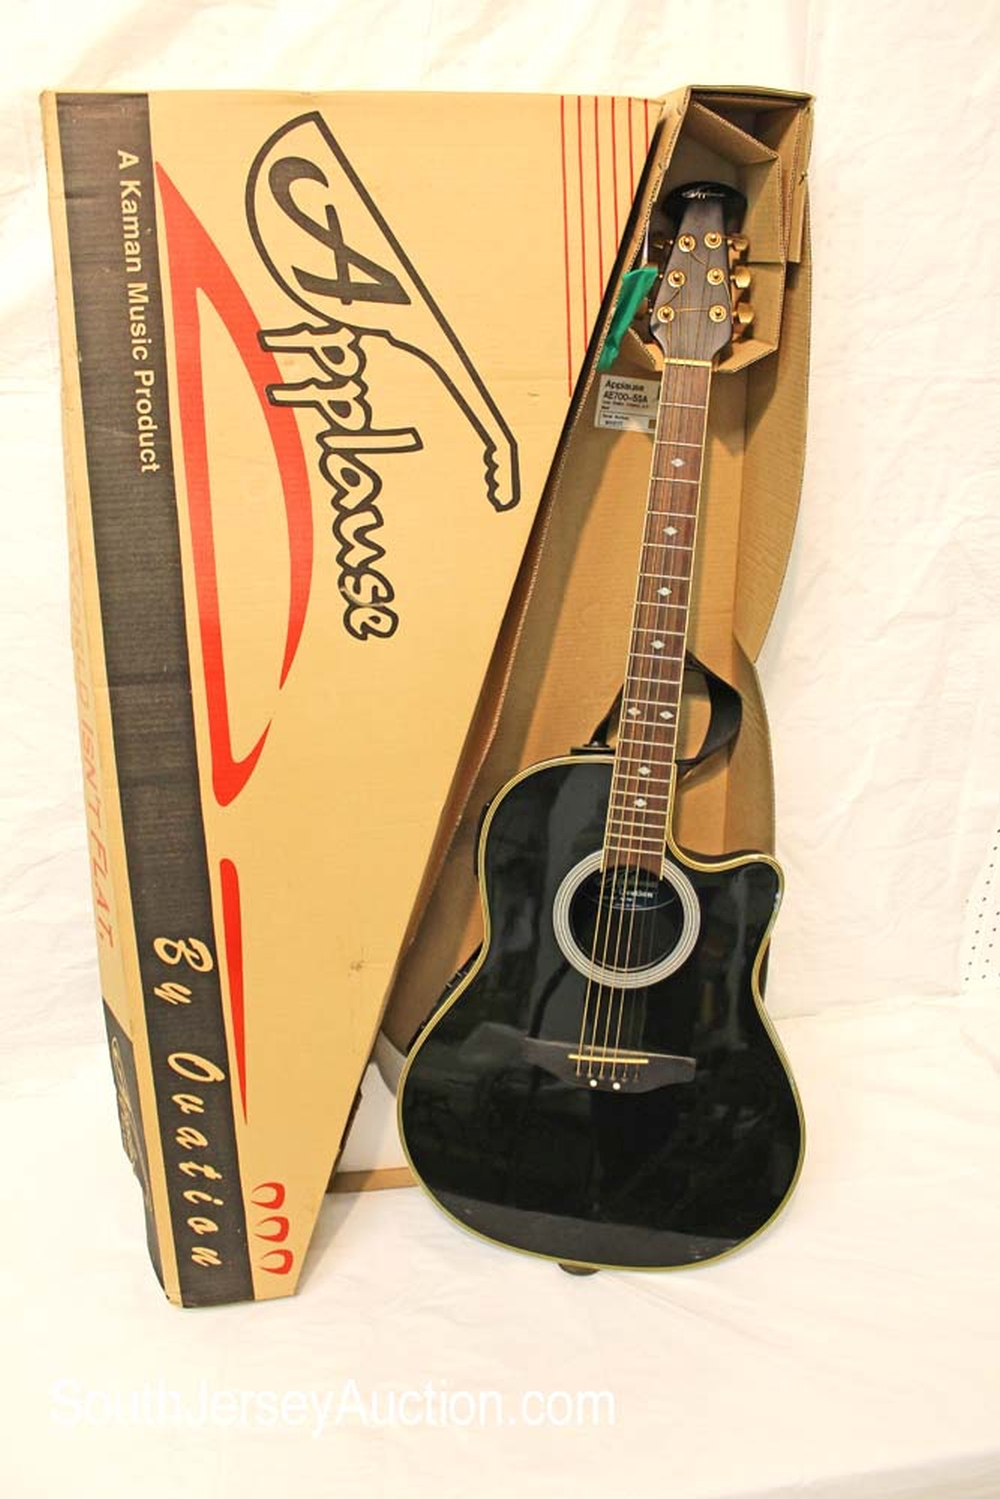 Late 90's Applause by Ovation Super Shallow, Cutaway, A/E in the black, round back guitar, made in Korea, has addition plate to reduce sliding, model number AE700-5SA acoustic guitar, a Kaman Music Product, original, good condition, believe s/n 9005177 with original box, some paperwork and strap